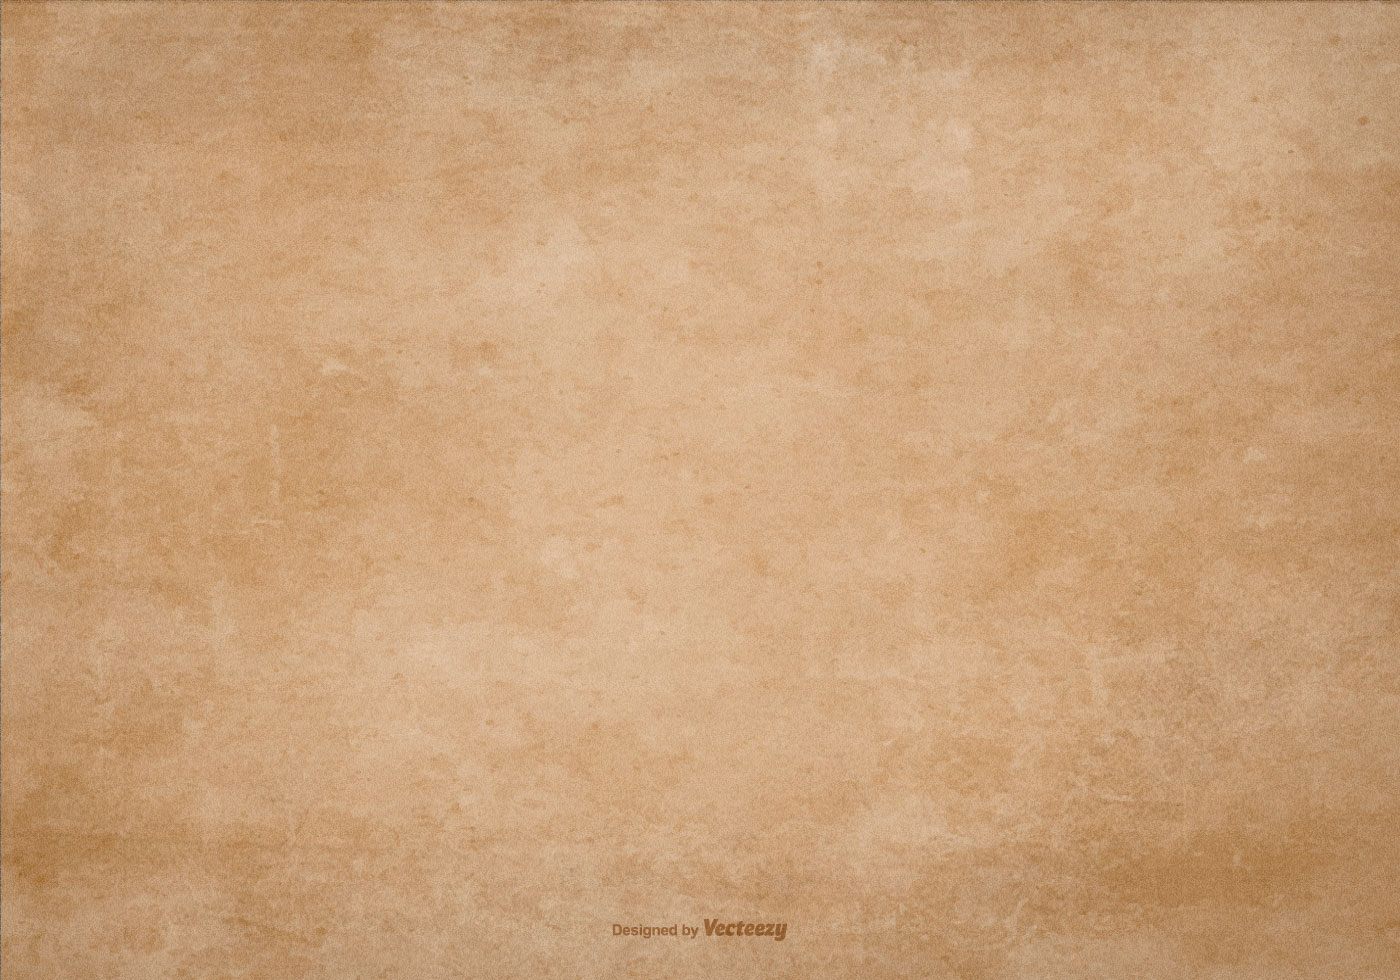 Grunge brown paper texture download free vector art for Texture background free download